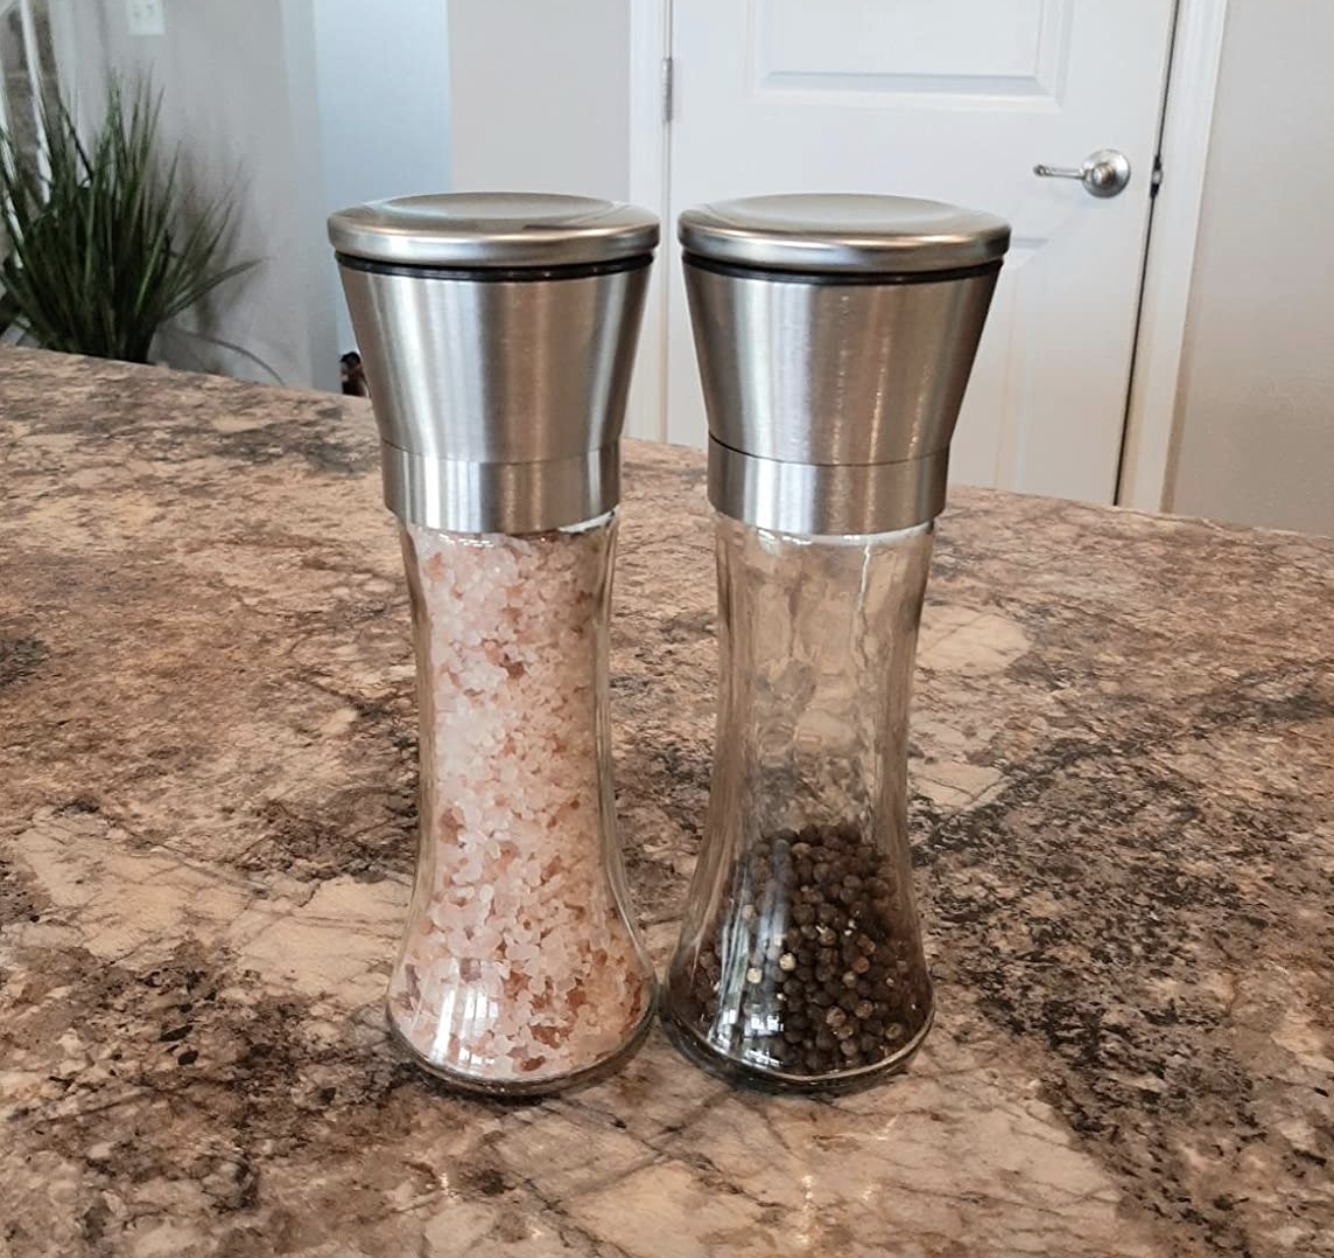 the salt and pepper grinders with pink himalayan salt and black pepper in them